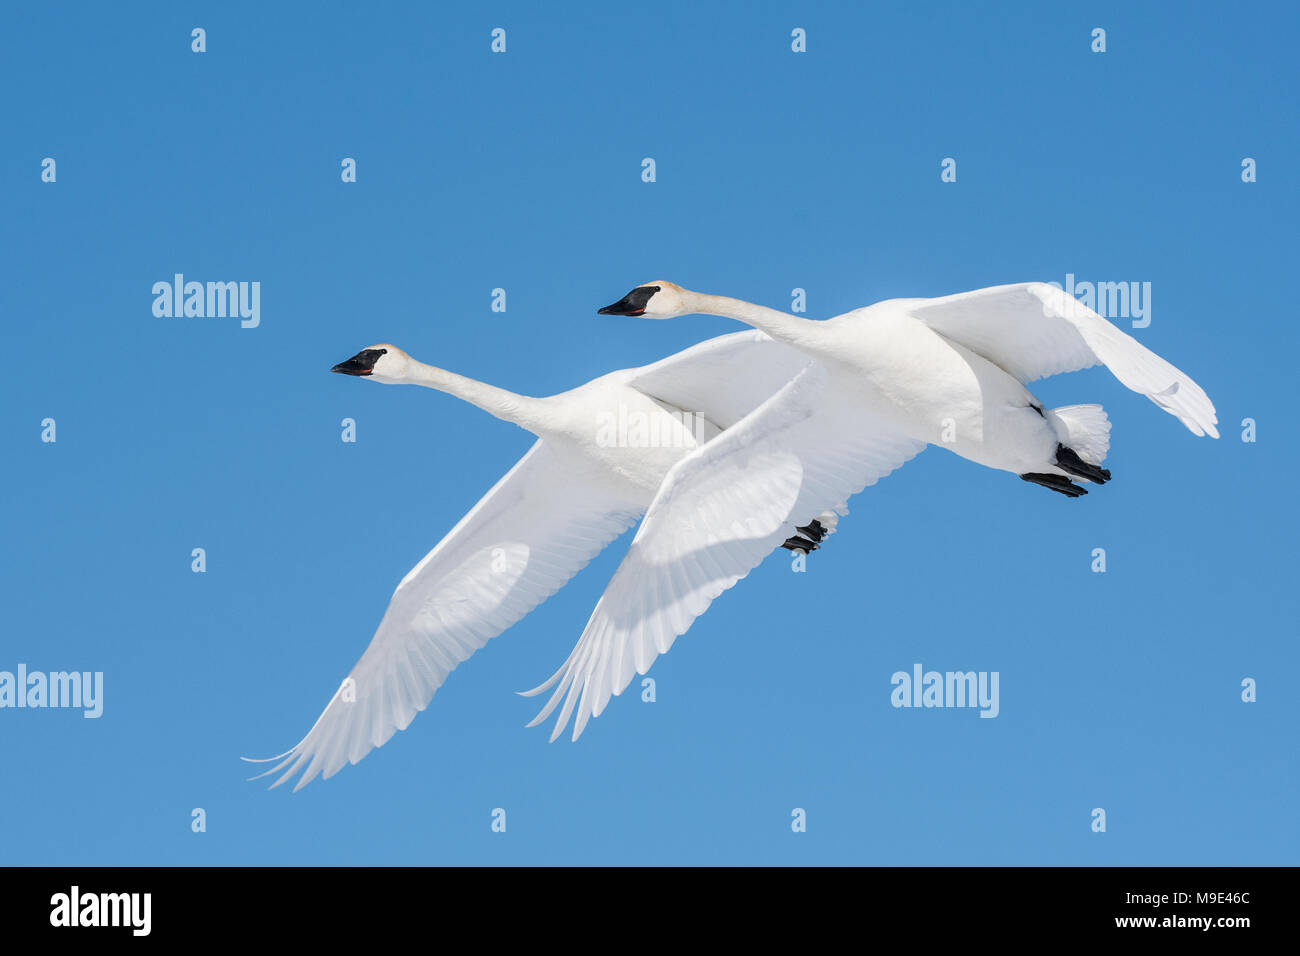 Trumpeter swans (Cygnus buccinator) flying, North America, USA, by Dominique Braud/Dembinsky Photo Assoc - Stock Image